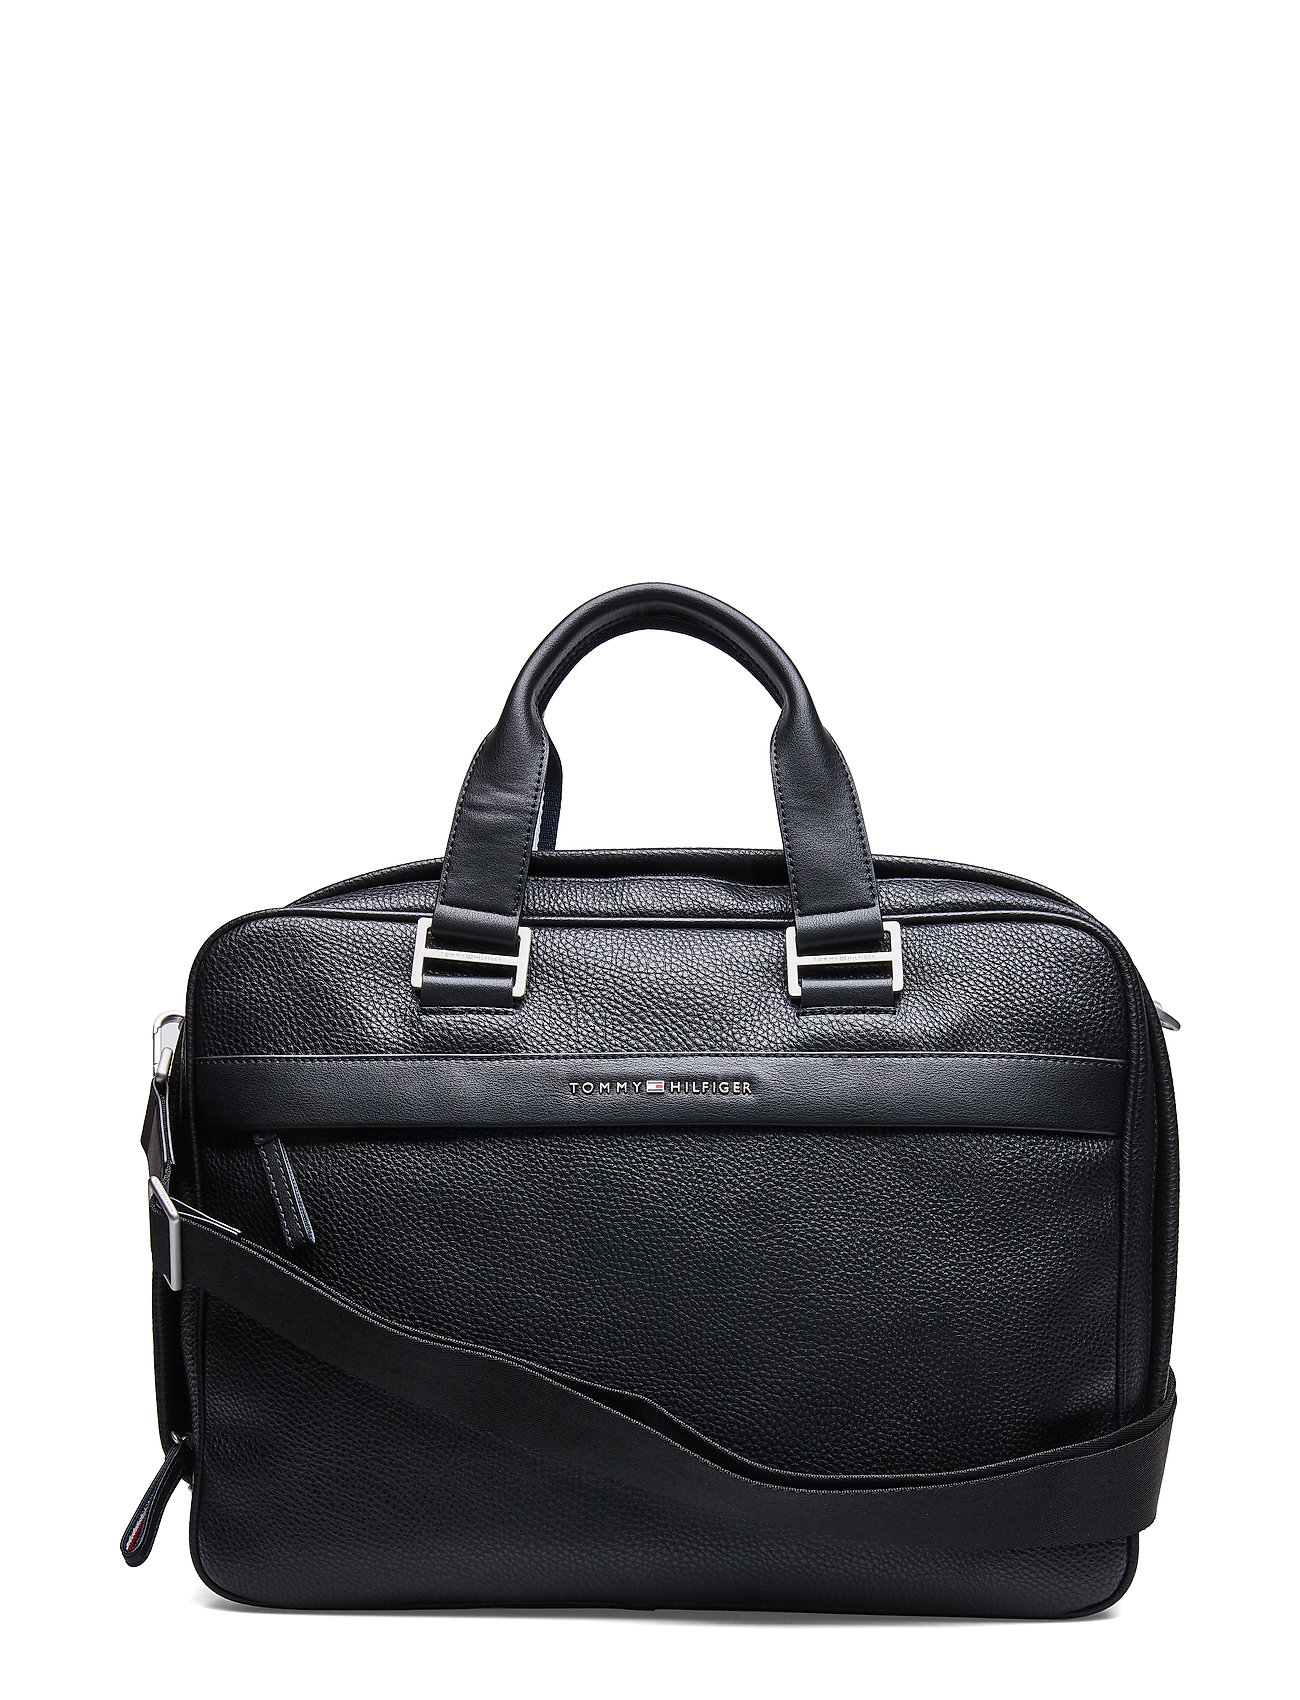 Tommy Hilfiger TH BUSINESS COMPUTER - BLACK